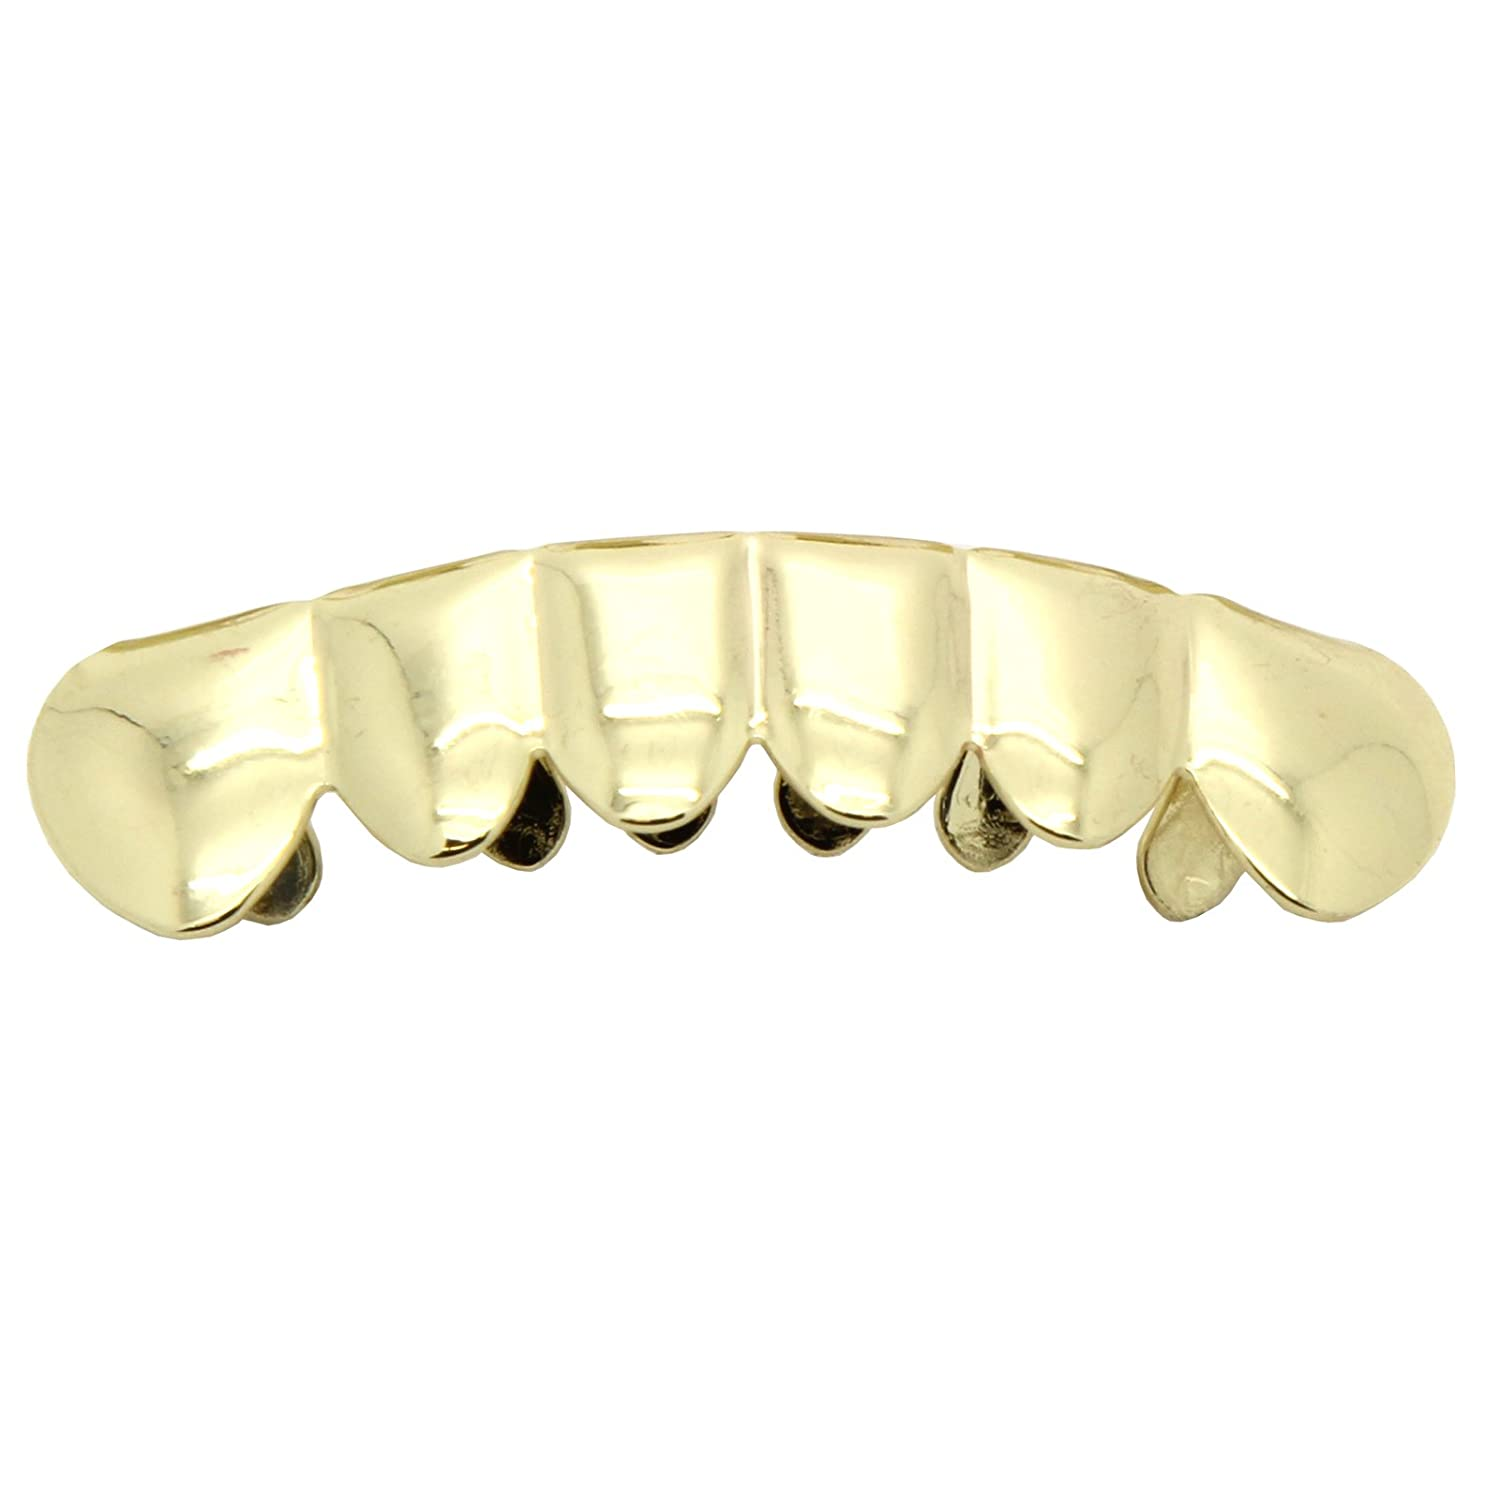 Gold-Tone Hip Hop Bling Removeable Bottom Mouth Grillz Grill iRockBling 1154